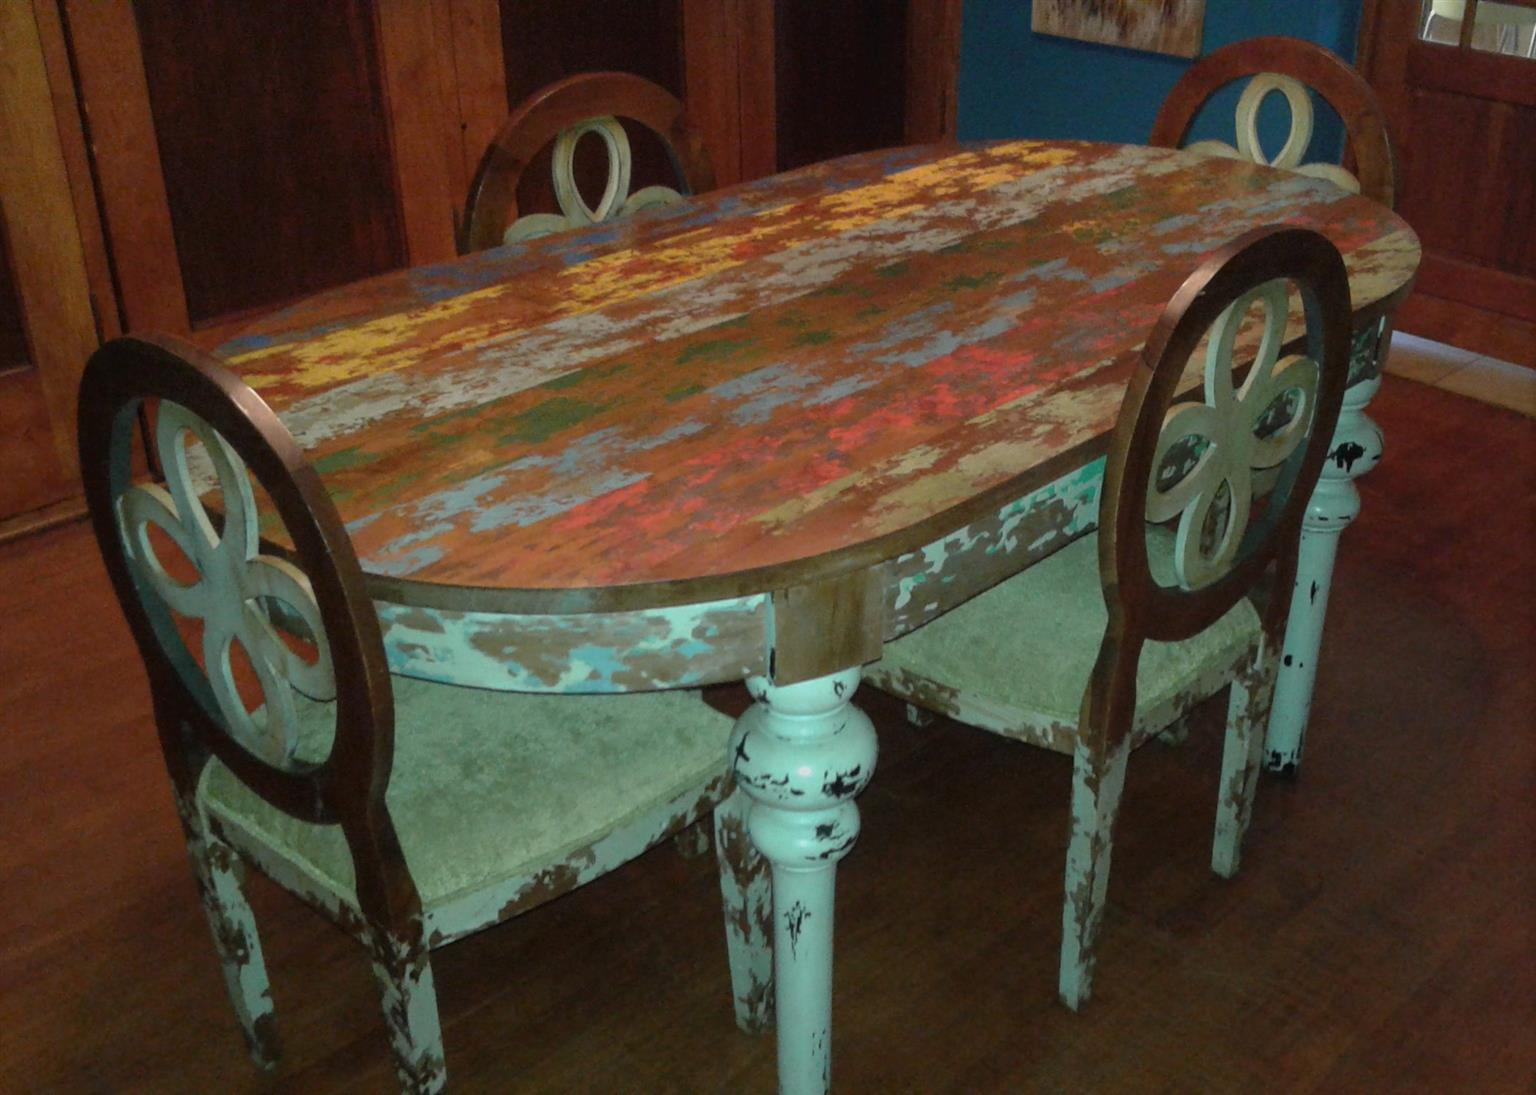 Home Decor/ Antique Painted Dining Table & 6 Chairs Set